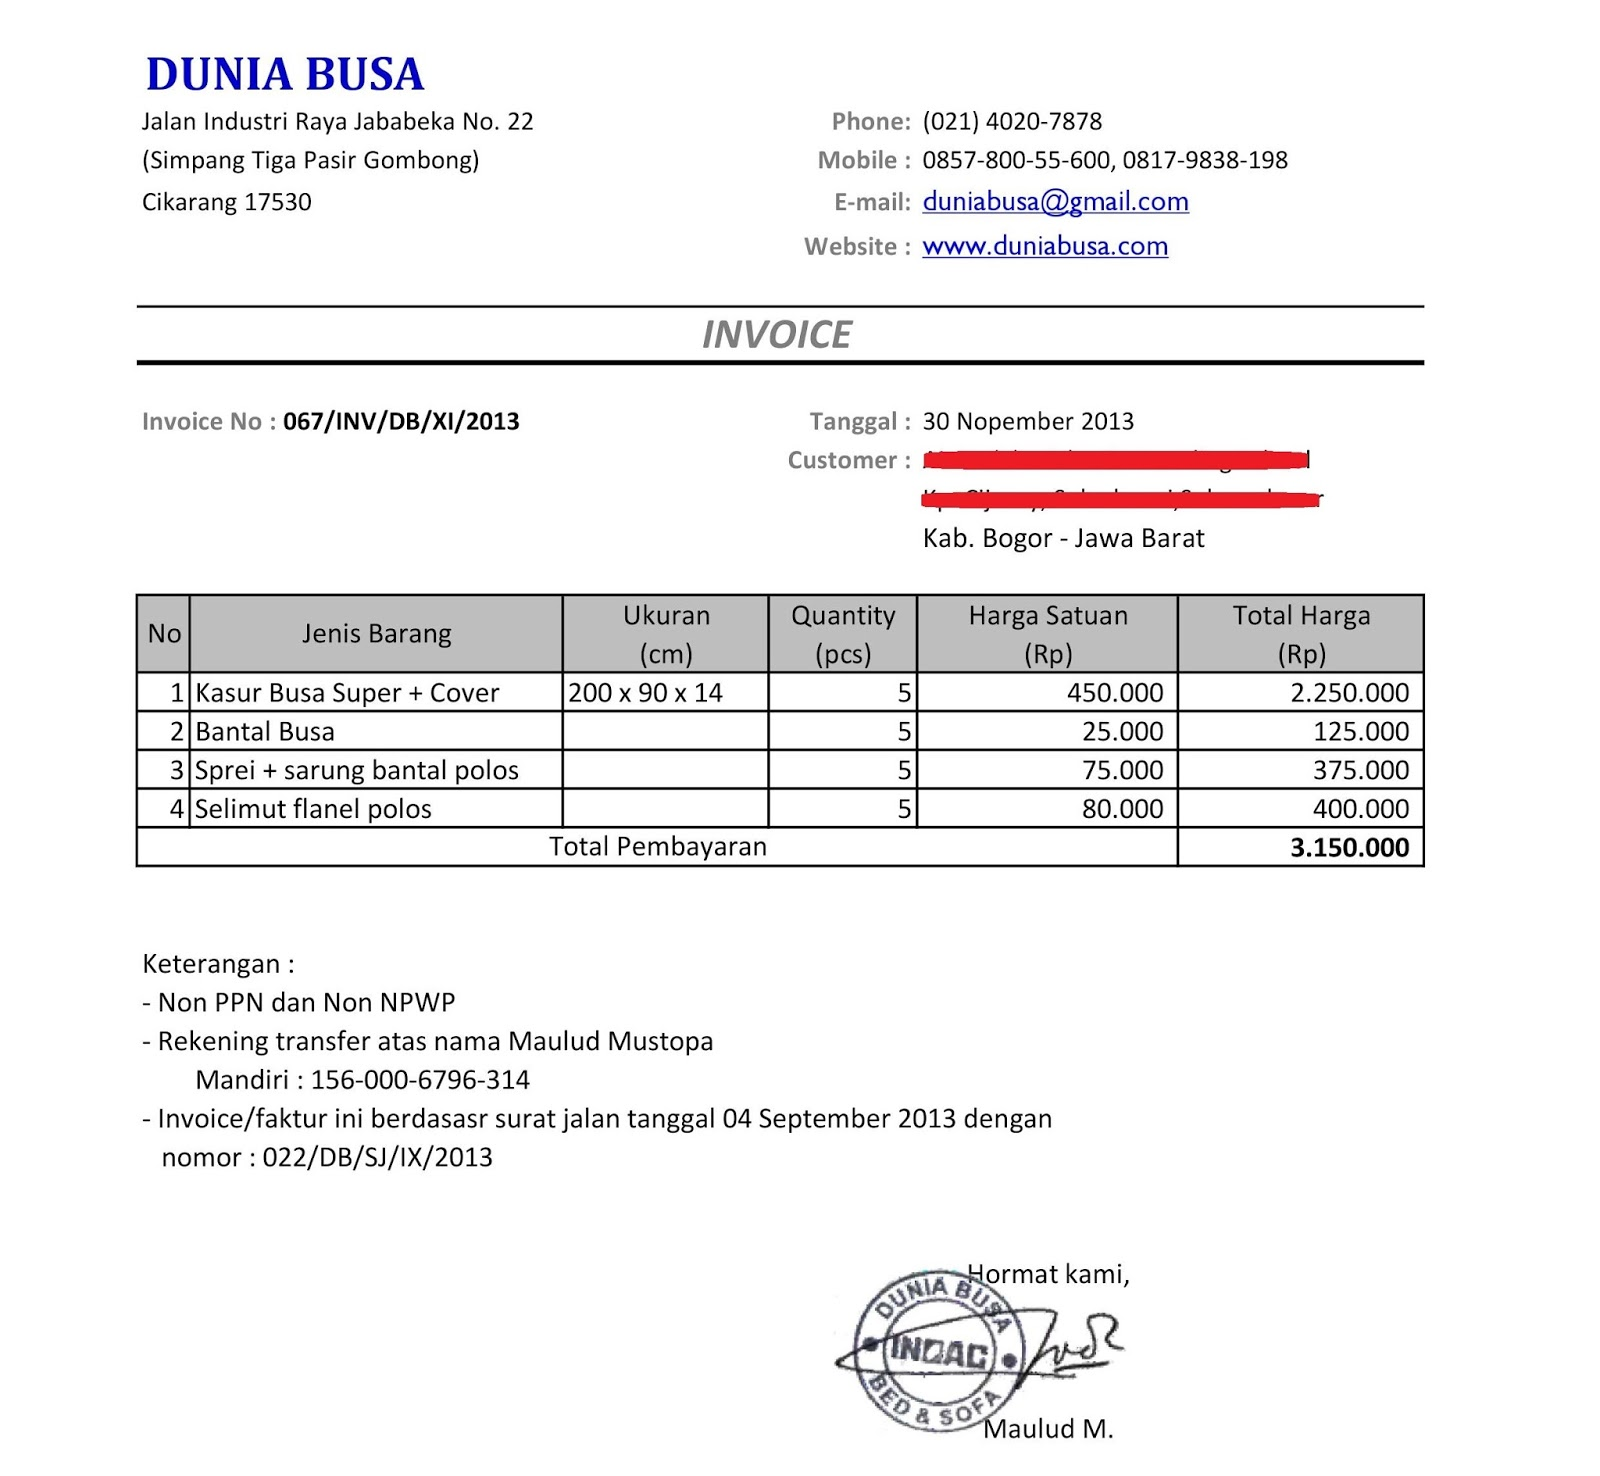 Usdgus  Seductive Free Invoice Online  Create Invoice Online  Invoice Template  With Fetching Contoh Format Invoice Atau Surat Tagihan  Brankas Arsip  Free Invoice Online With Amusing How To Make A Receipt In Microsoft Word Also Landlord Receipt For Rent In Addition Refurbished Neat Receipts And Net Due Upon Receipt As Well As Local Property Tax Receipt Additionally Best Thermal Receipt Printer From Sklepco With Usdgus  Fetching Free Invoice Online  Create Invoice Online  Invoice Template  With Amusing Contoh Format Invoice Atau Surat Tagihan  Brankas Arsip  Free Invoice Online And Seductive How To Make A Receipt In Microsoft Word Also Landlord Receipt For Rent In Addition Refurbished Neat Receipts From Sklepco